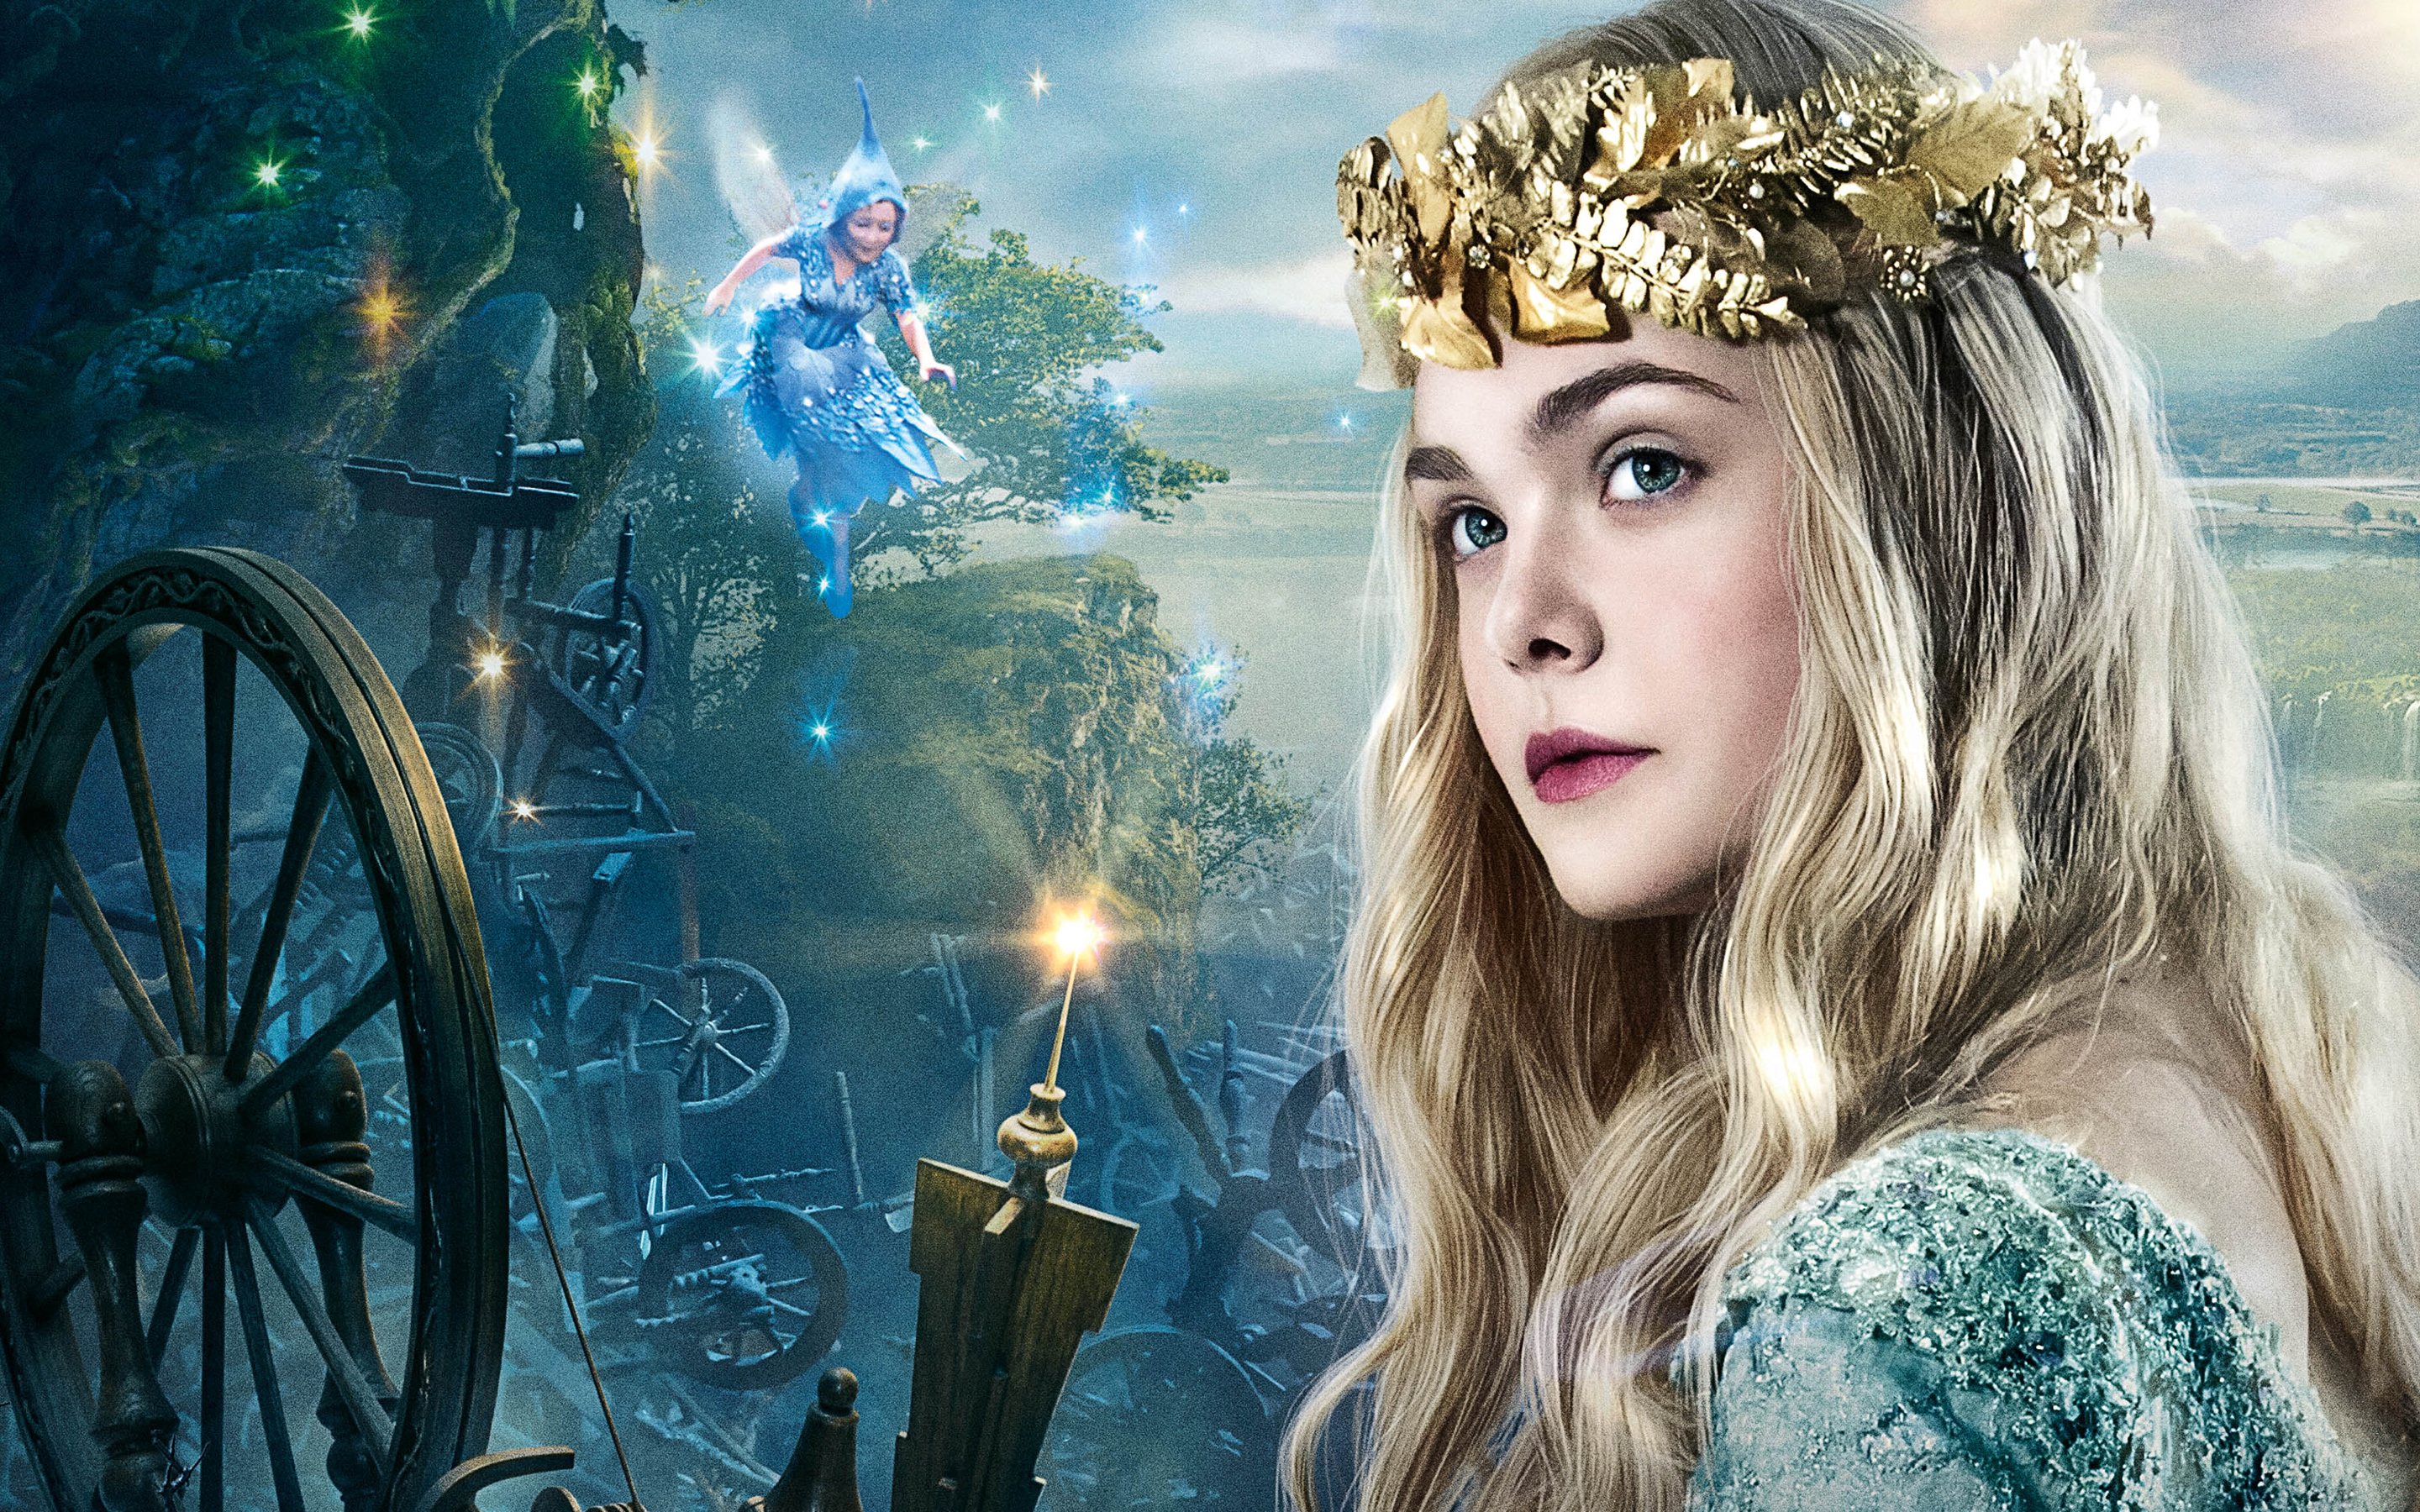 Elle Fanning as Princess Aurora 541.89 Kb